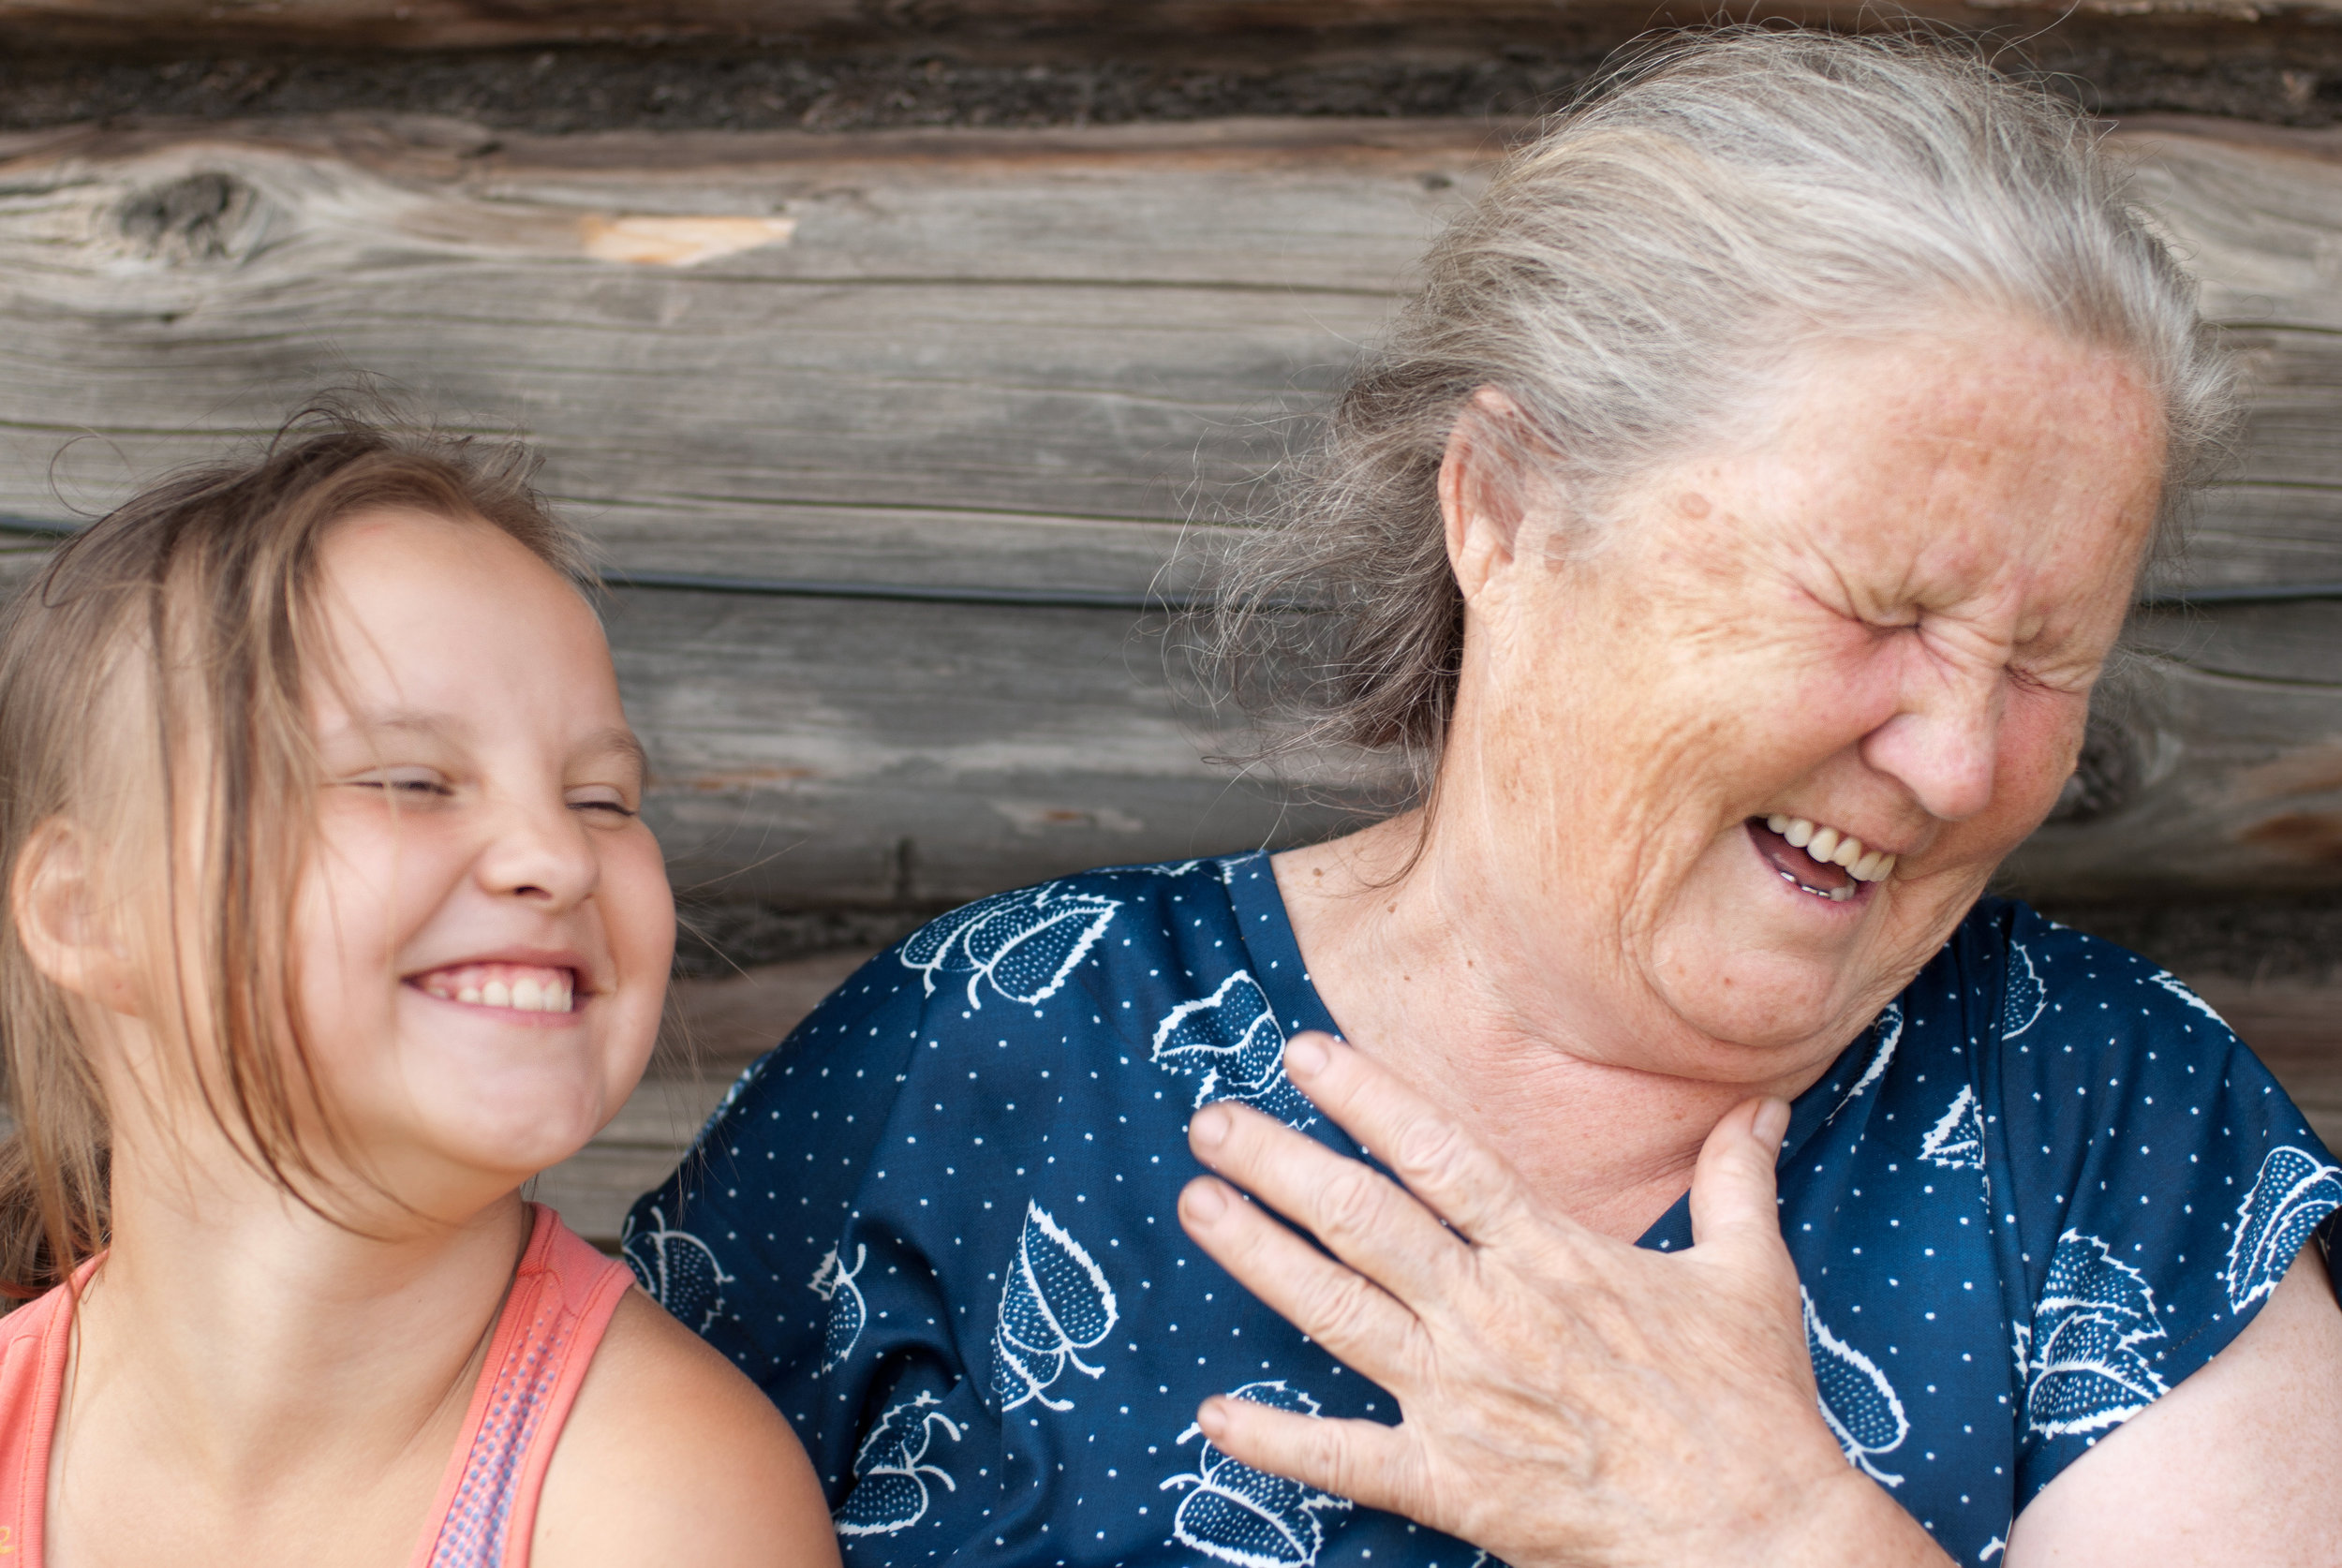 elderly-woman-with-the-grand-daughter-627488978_3872x2592.jpeg